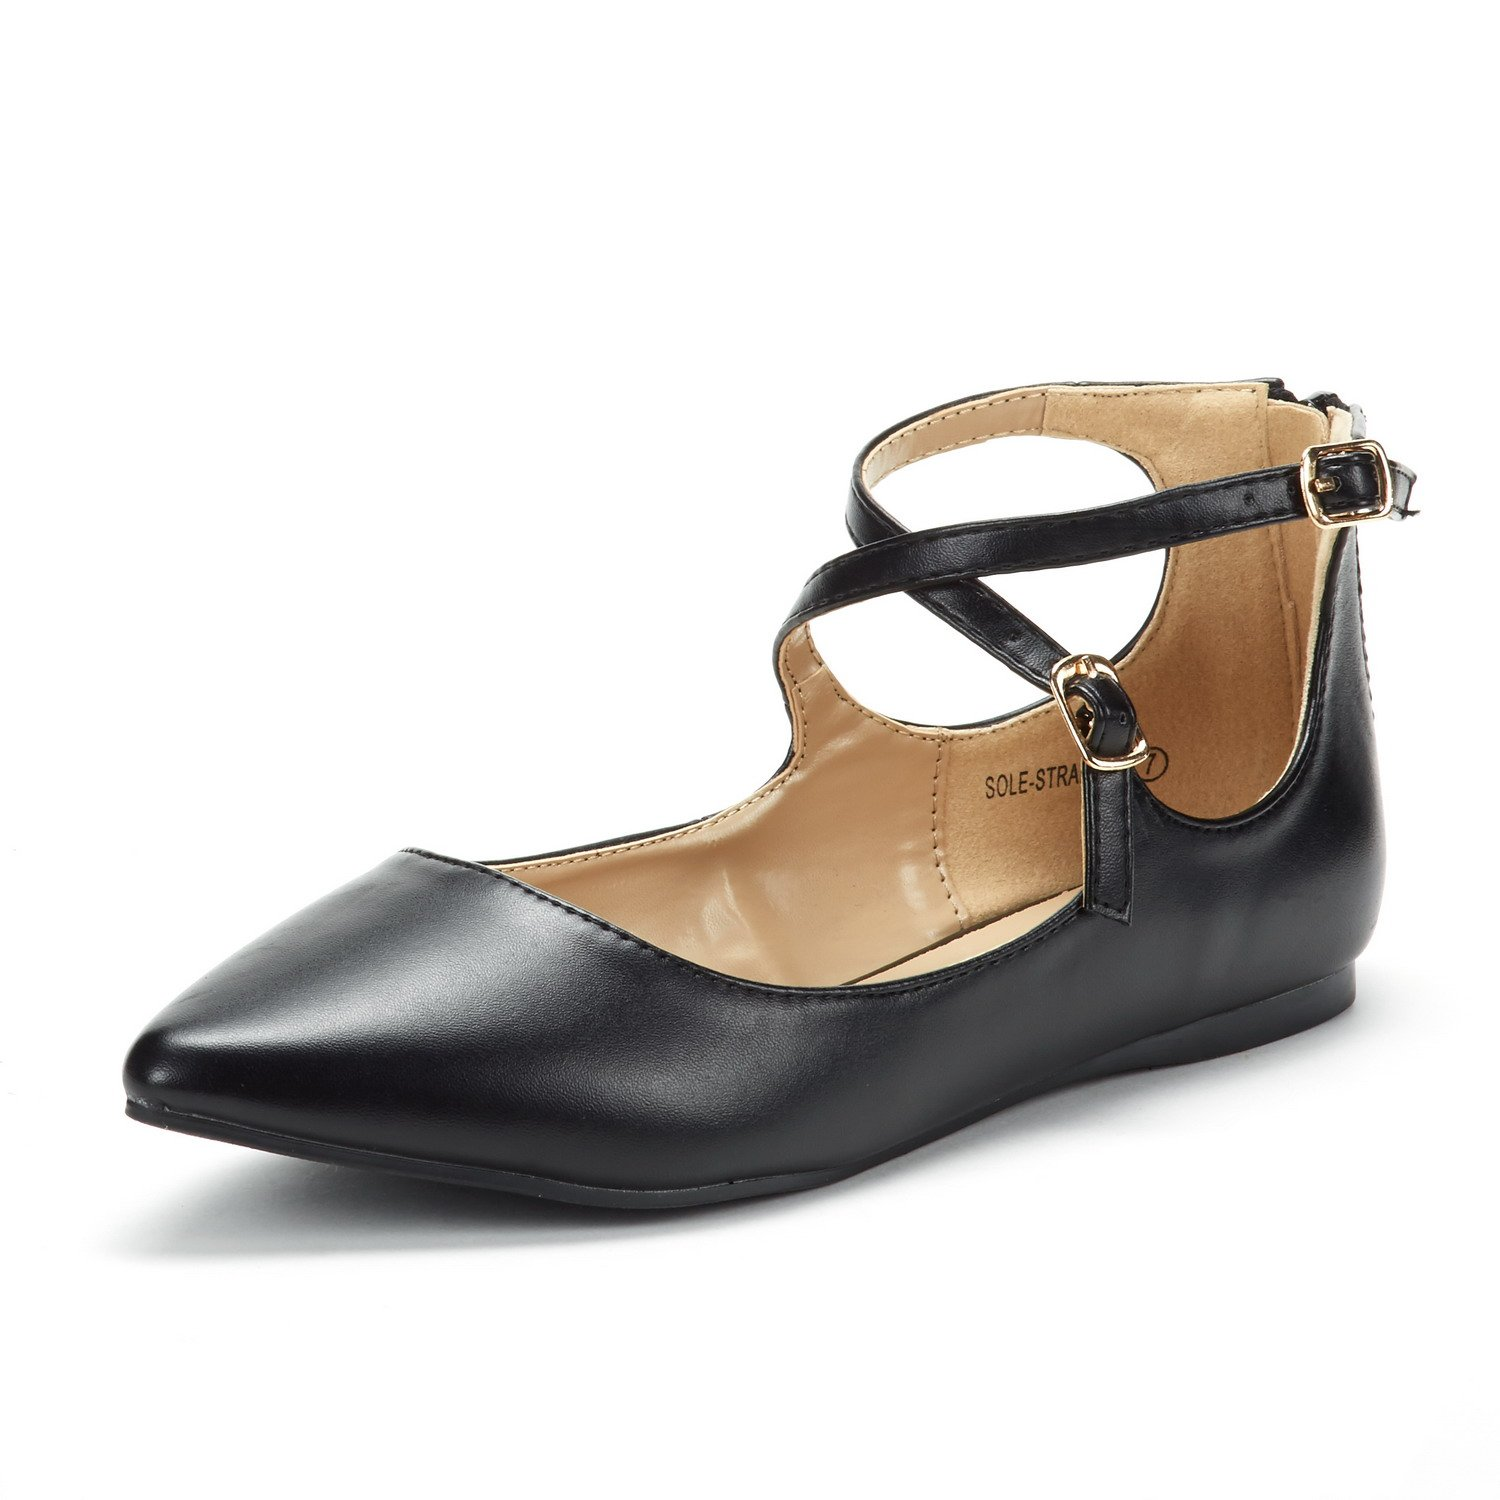 DREAM PAIRS Women's Sole-Strappy Black Pu Ankle Straps Flats Shoes - 8 M US